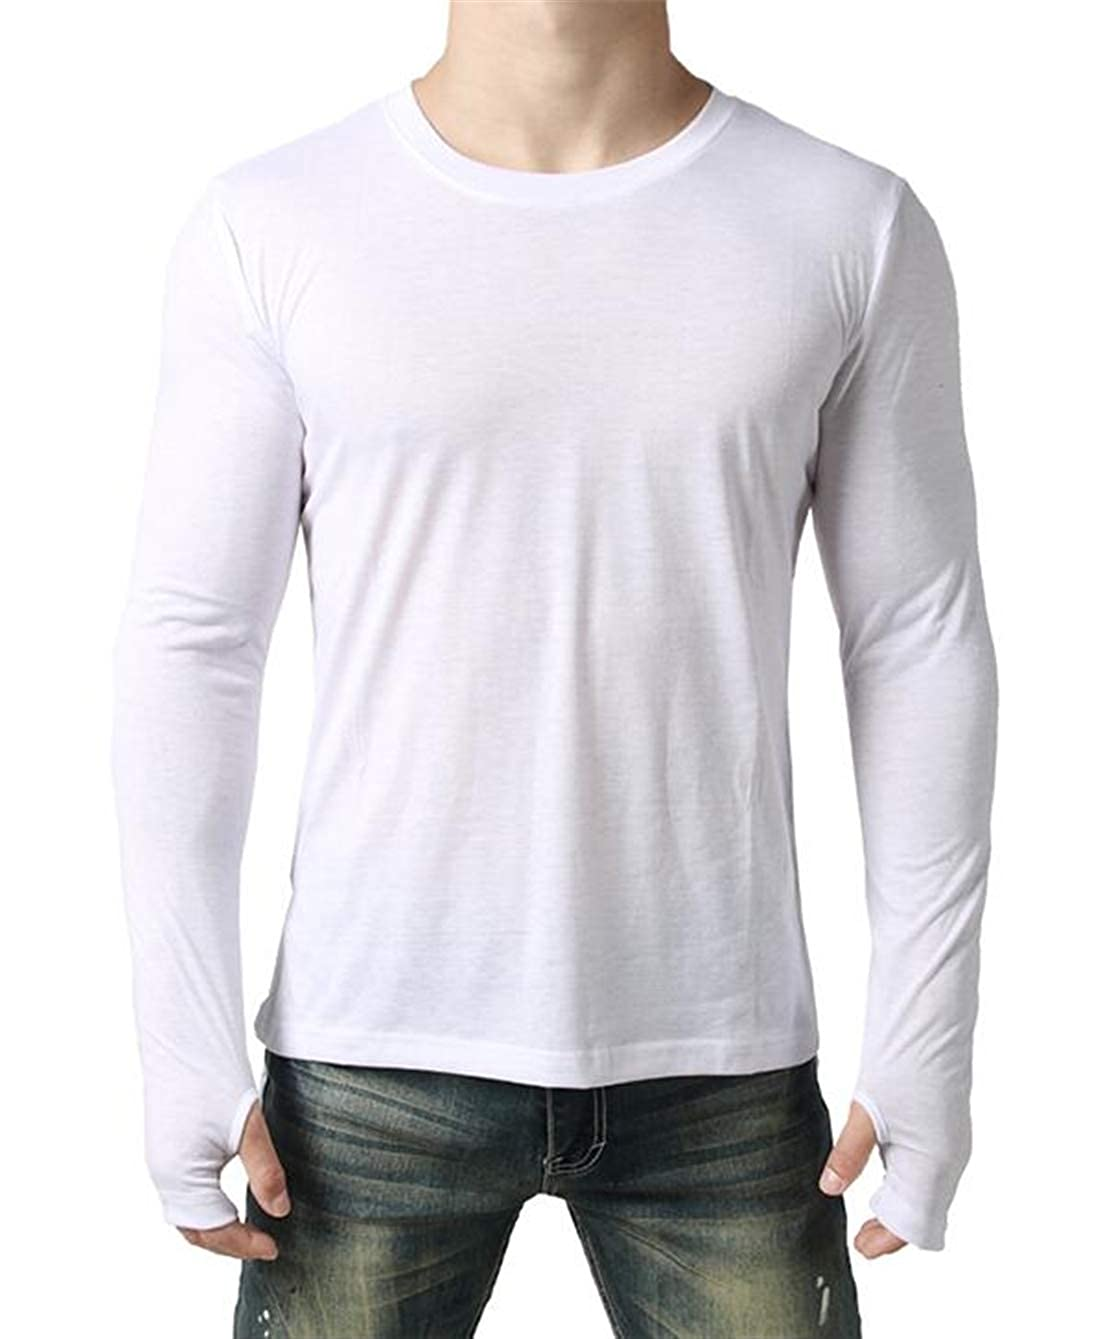 S-Fly Men Slim Fit Hip-hop Thumb Hole Cuff Round Neck Casual Plain Asymmetrical Hem Tee Top T-Shirts